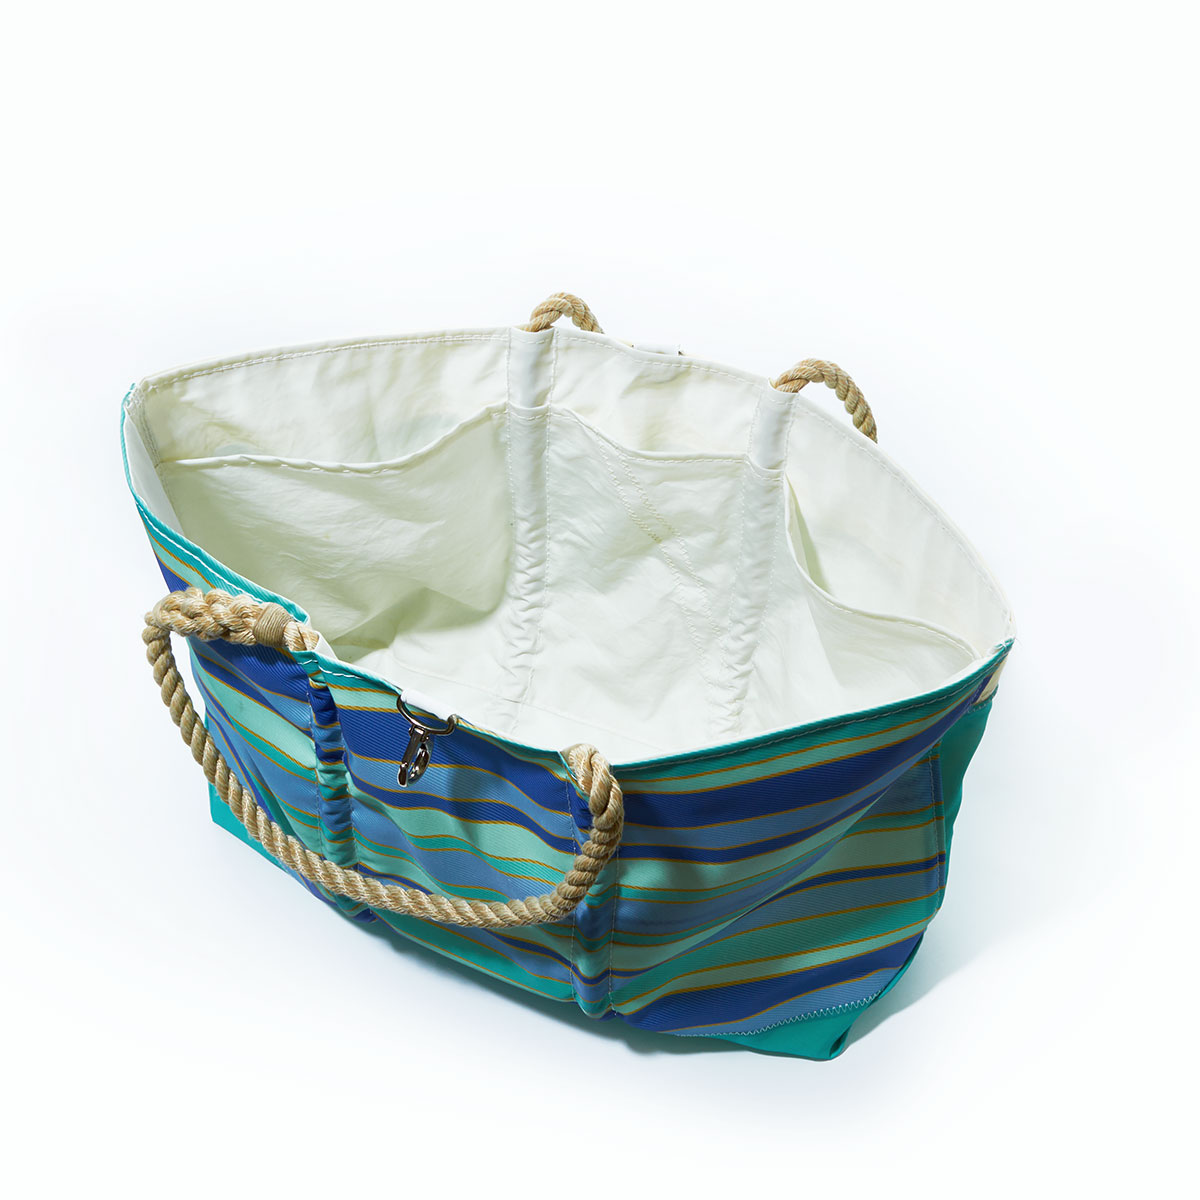 interior view, stripes of shades of blues are printed on this recycled sail cloth tote, with a seafoam green bottom and hemp rope handles